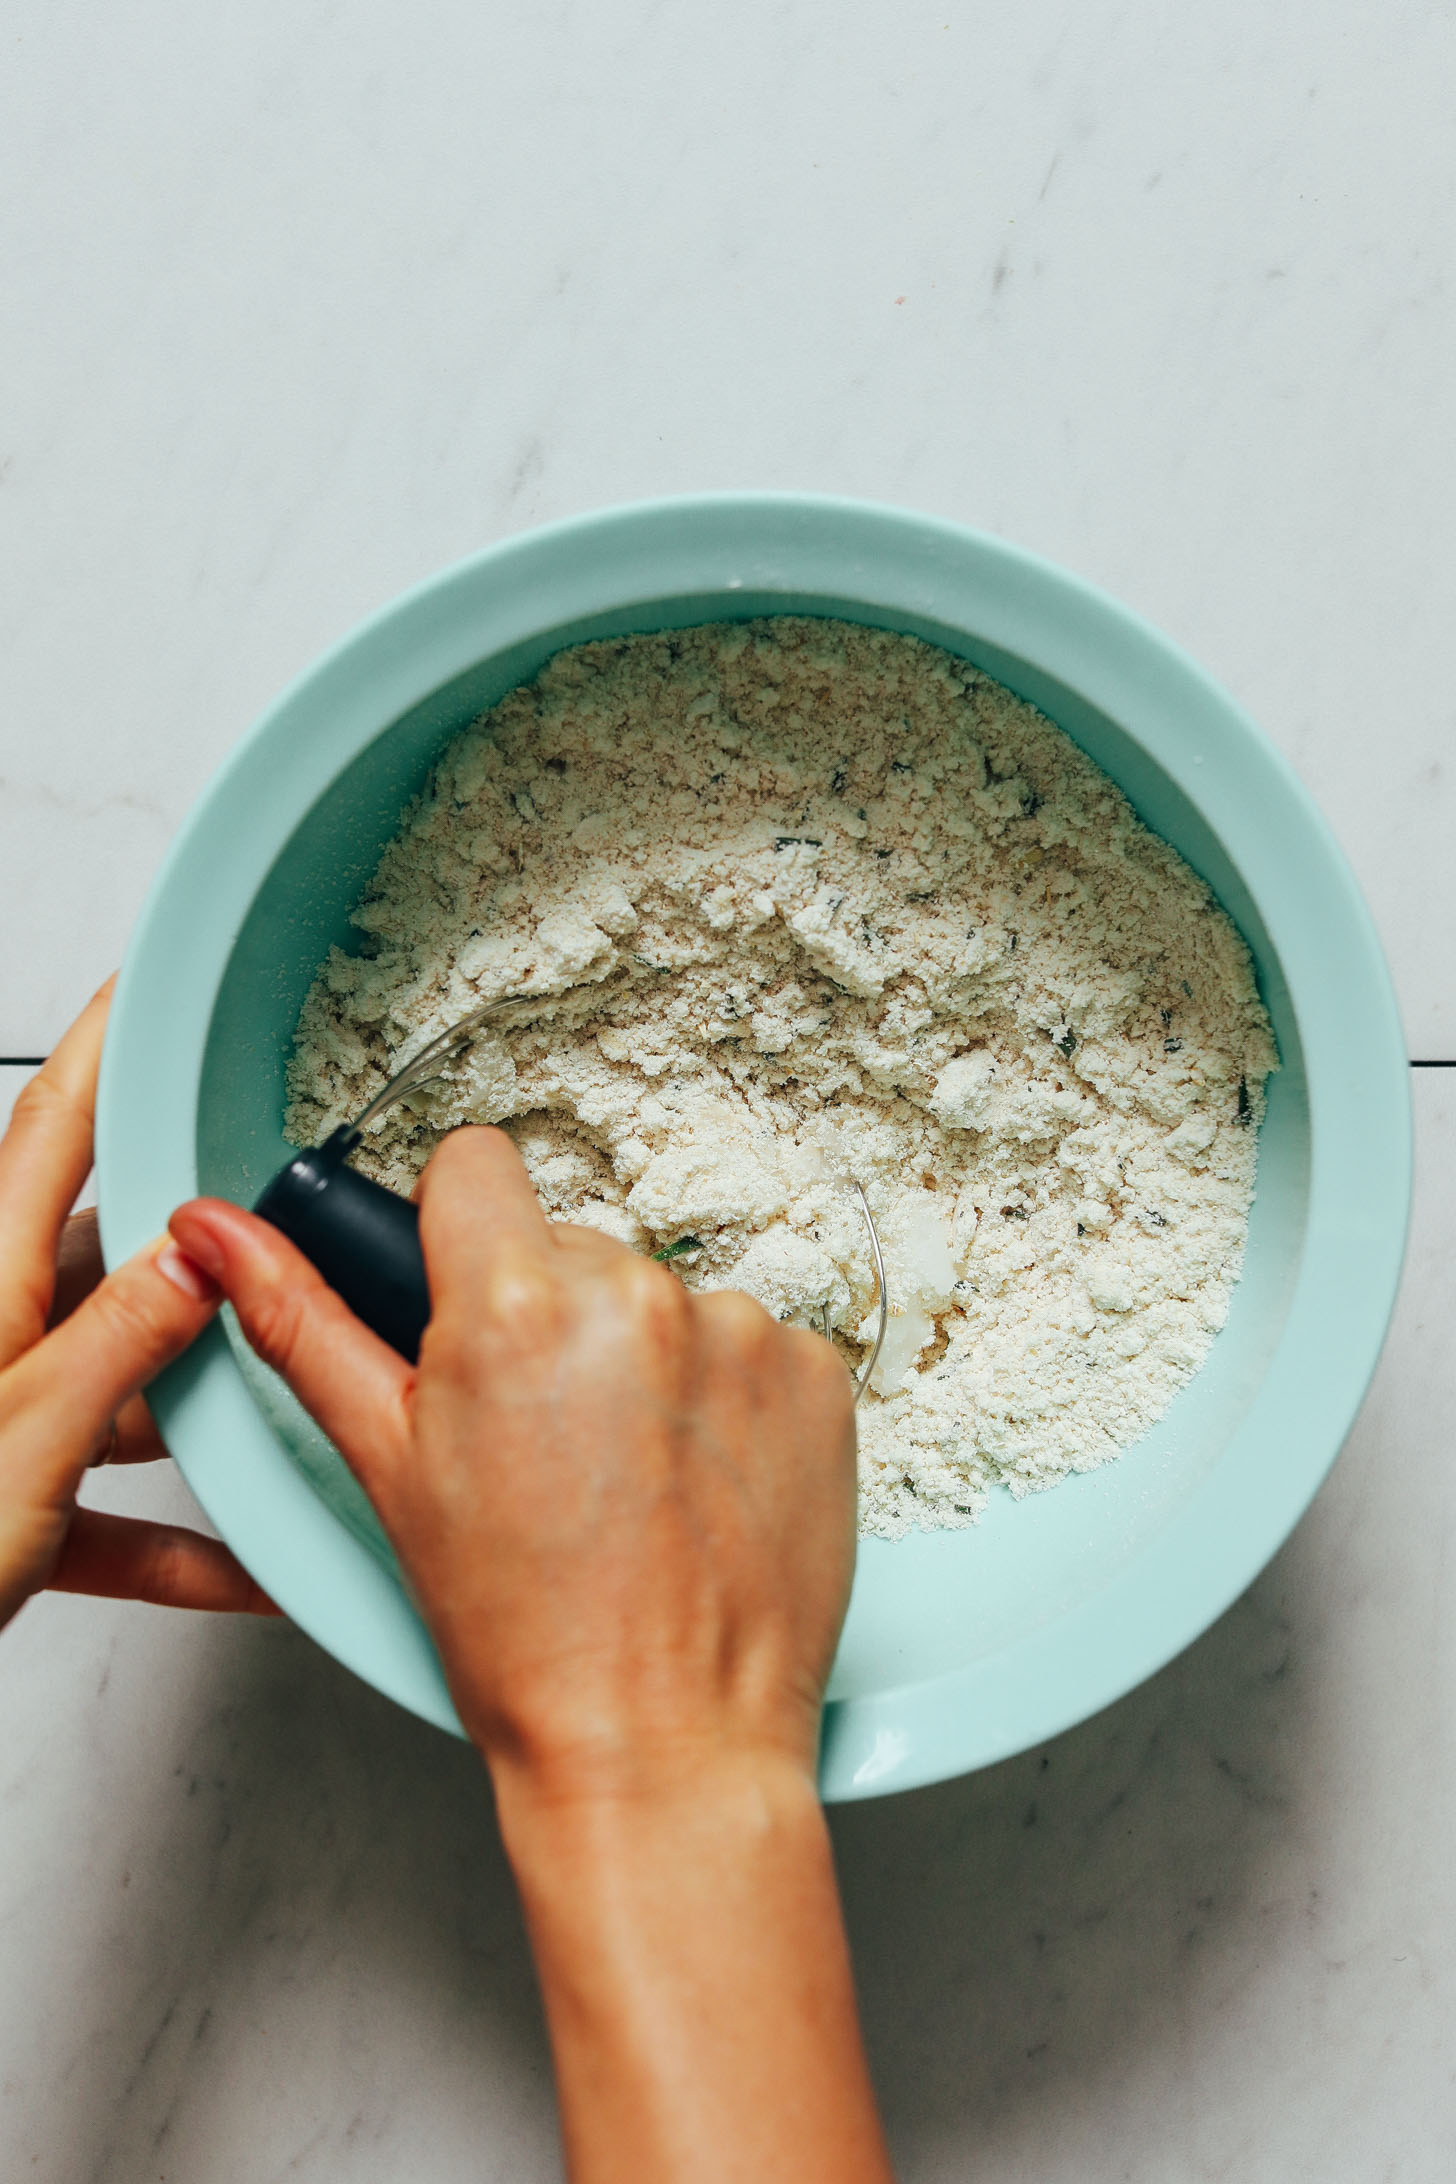 Using a pastry cutter to mix coconut oil into dry ingredients